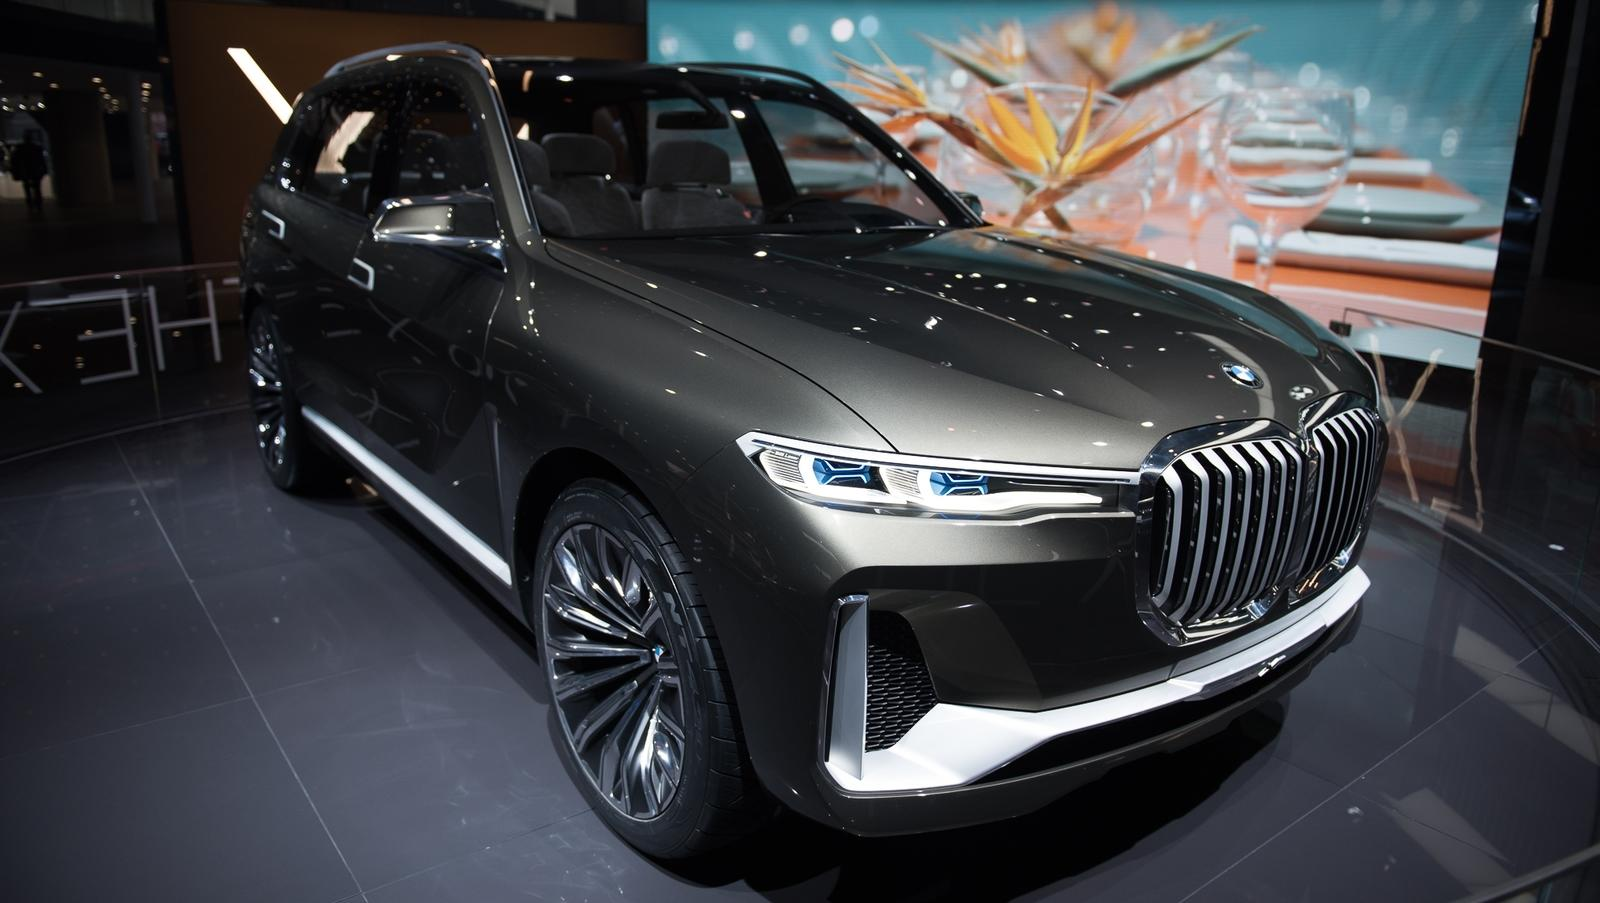 BMW X8 To Take On Audi Q8 And Range Rover Velar In 2020 ...